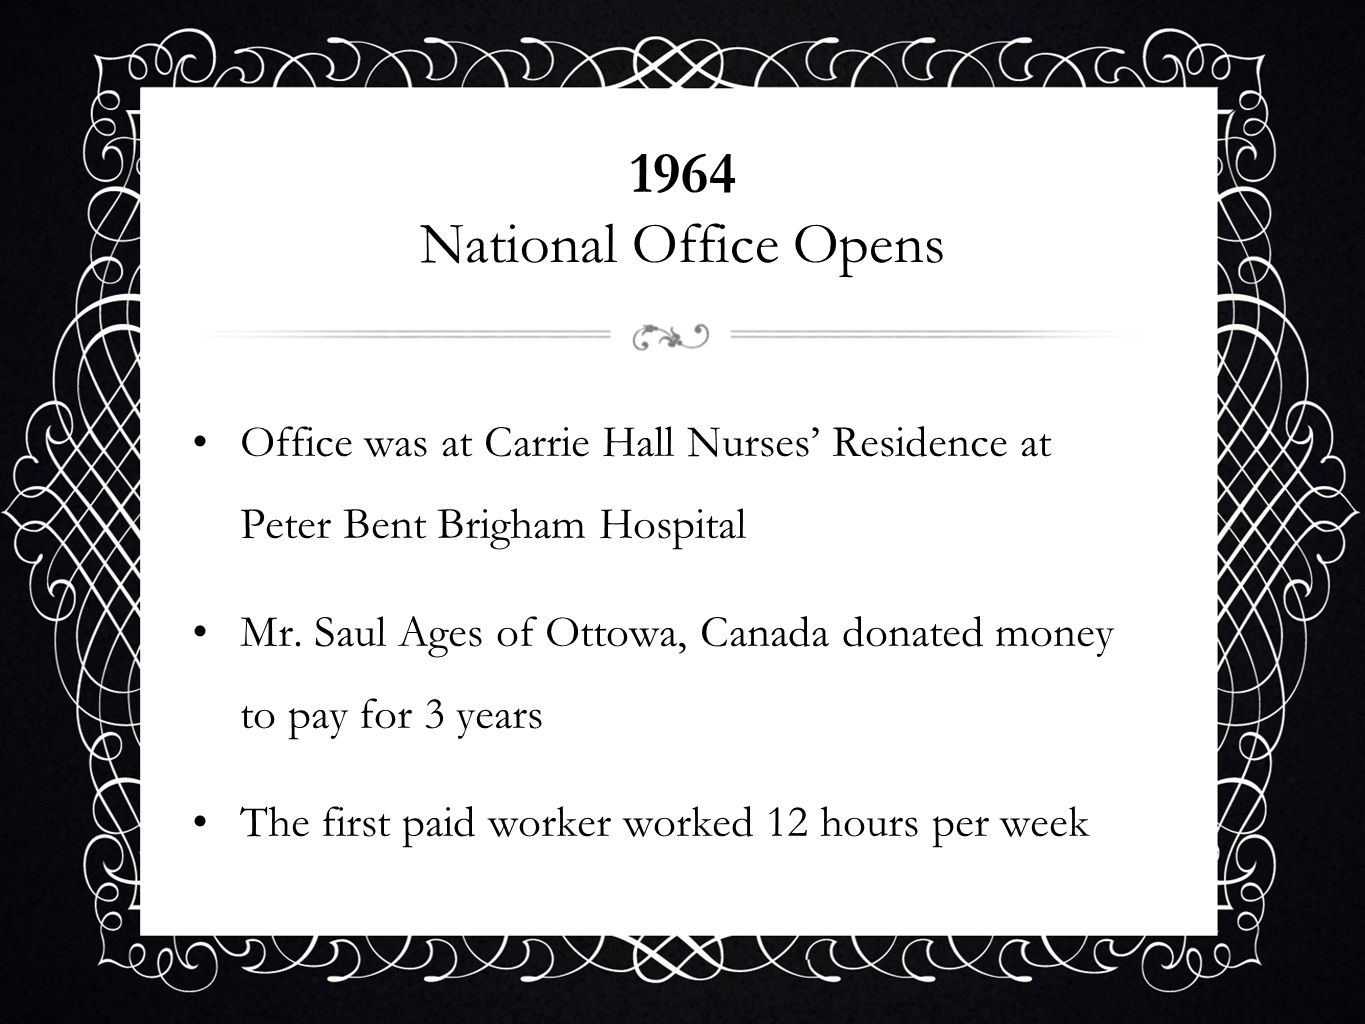 1964 National Office OpensOffice was at Carrie Hall Nurses' Residence at Peter Bent Brigham Hospital.